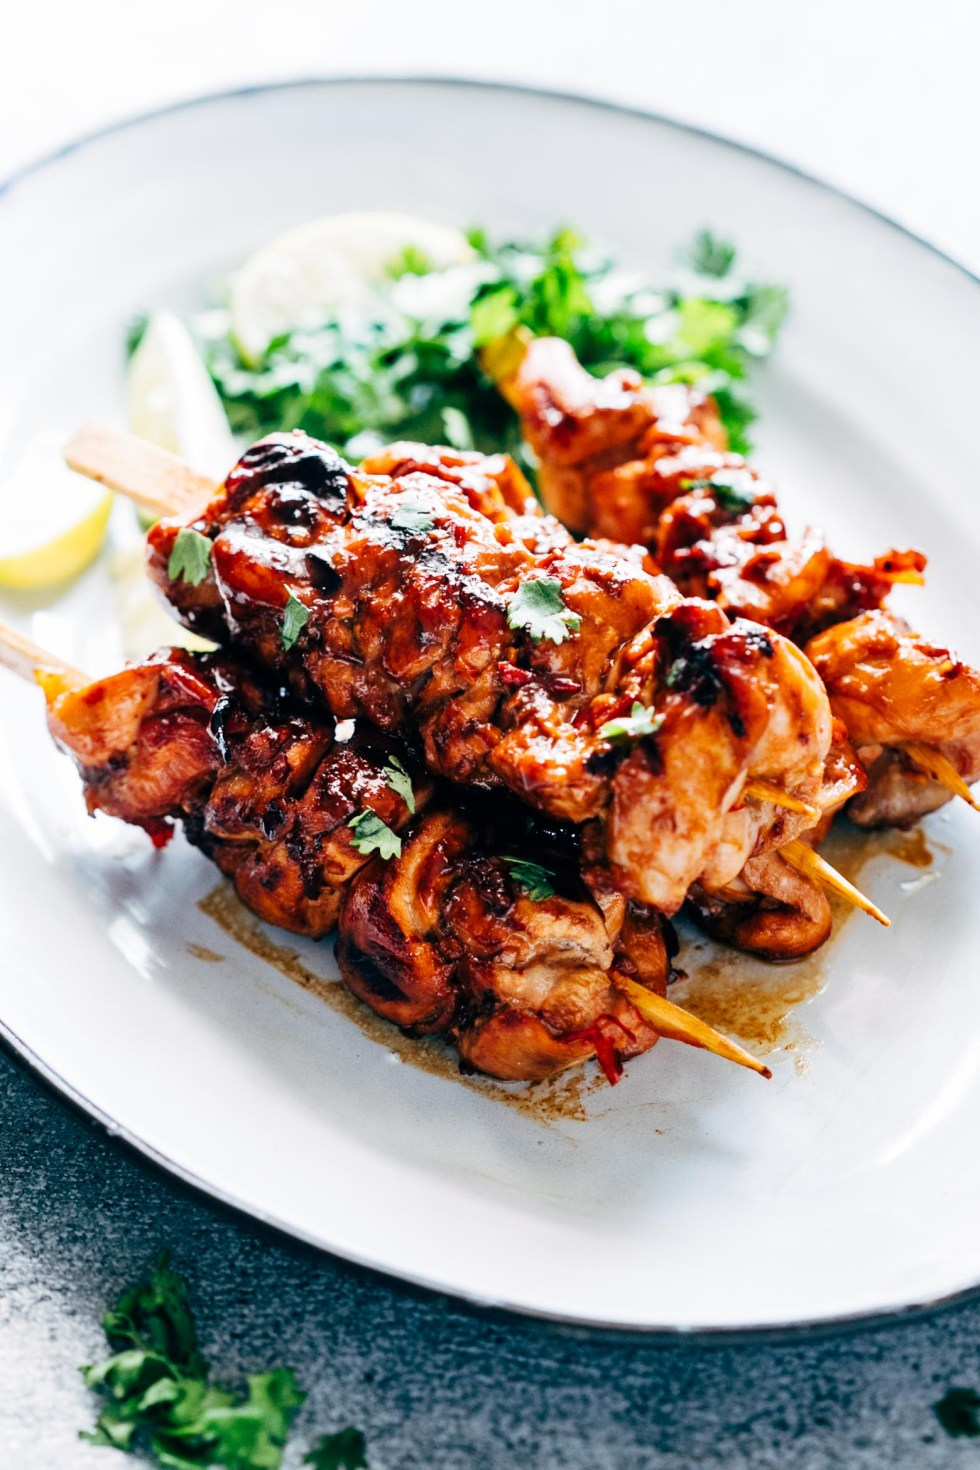 Grilled Sambal Chicken Skewers is an easy, 5 ingredient recipe thats spicy, sweet and sticky! Its a chinese style recipe with sambal oelek, soy sauce and lemon grass.